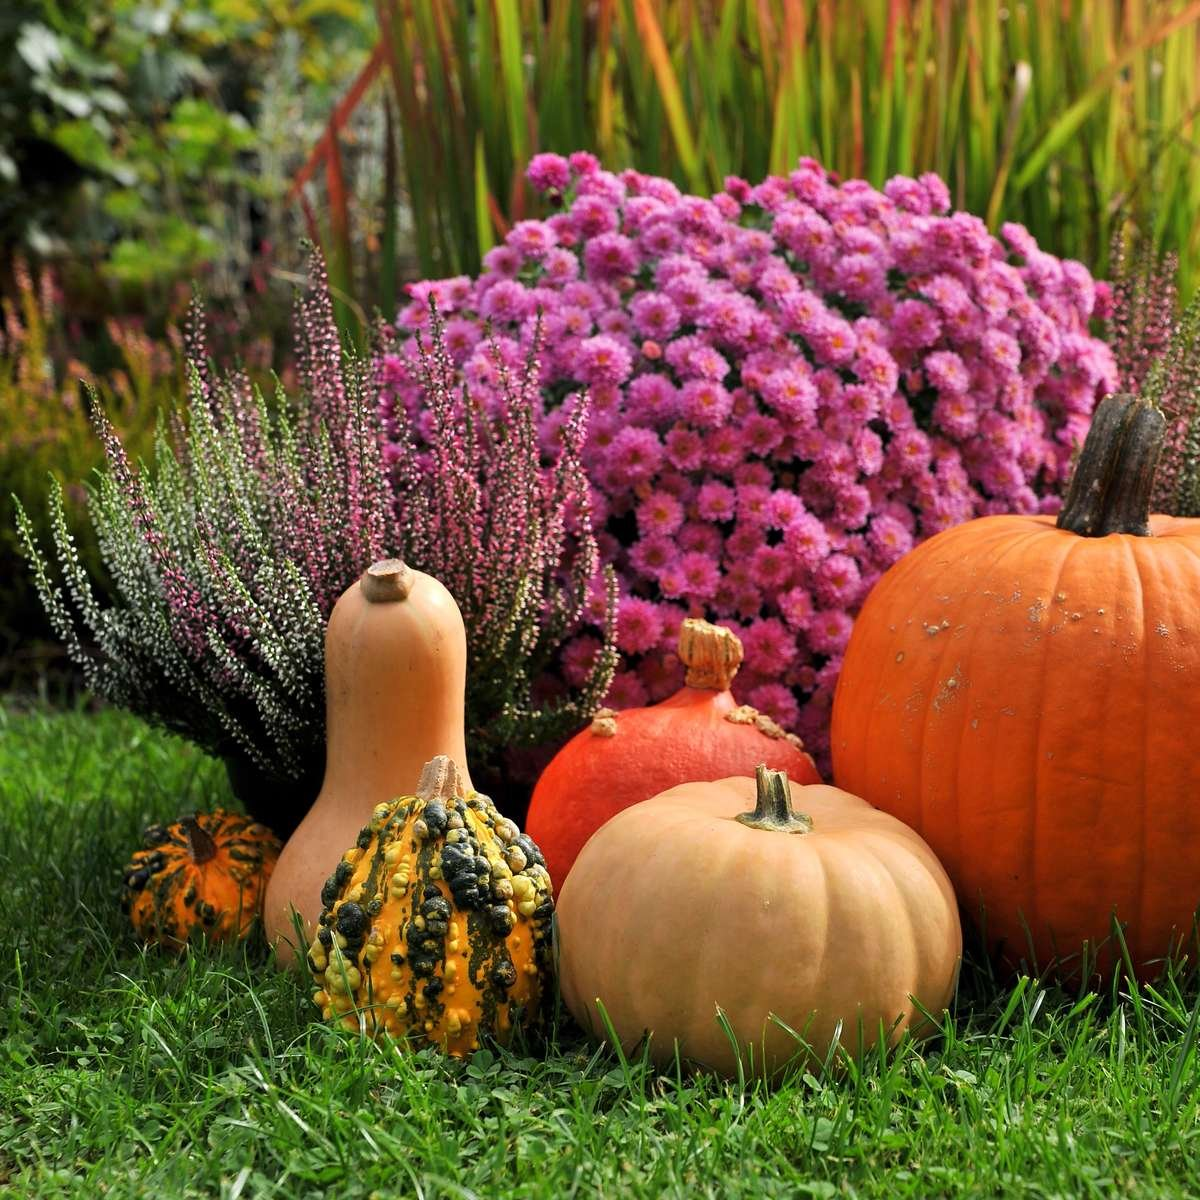 Mums, Pumpkins and Lawn in Fall Garden